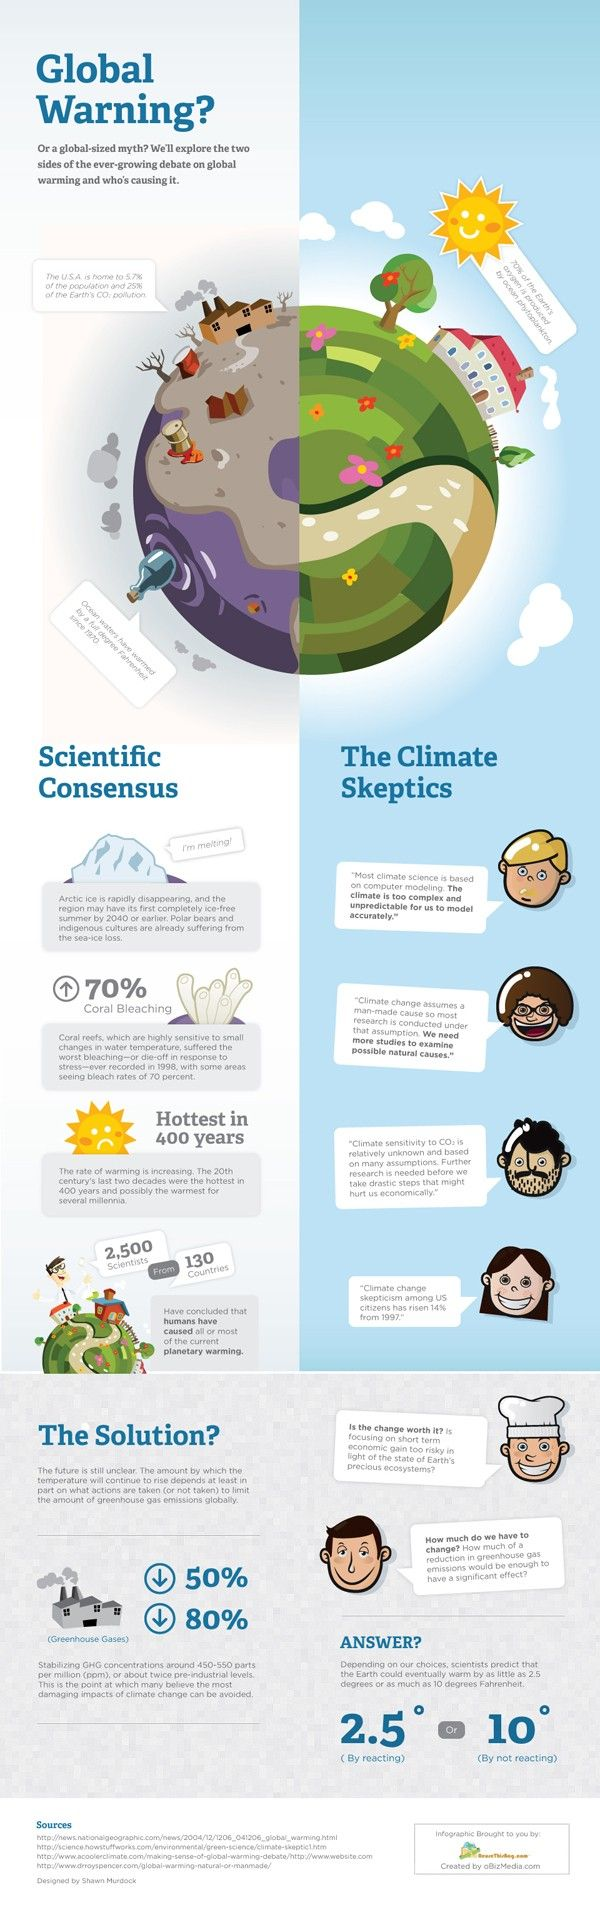 must see global warming climate change pins global warming global warming scientists vs climate skeptics